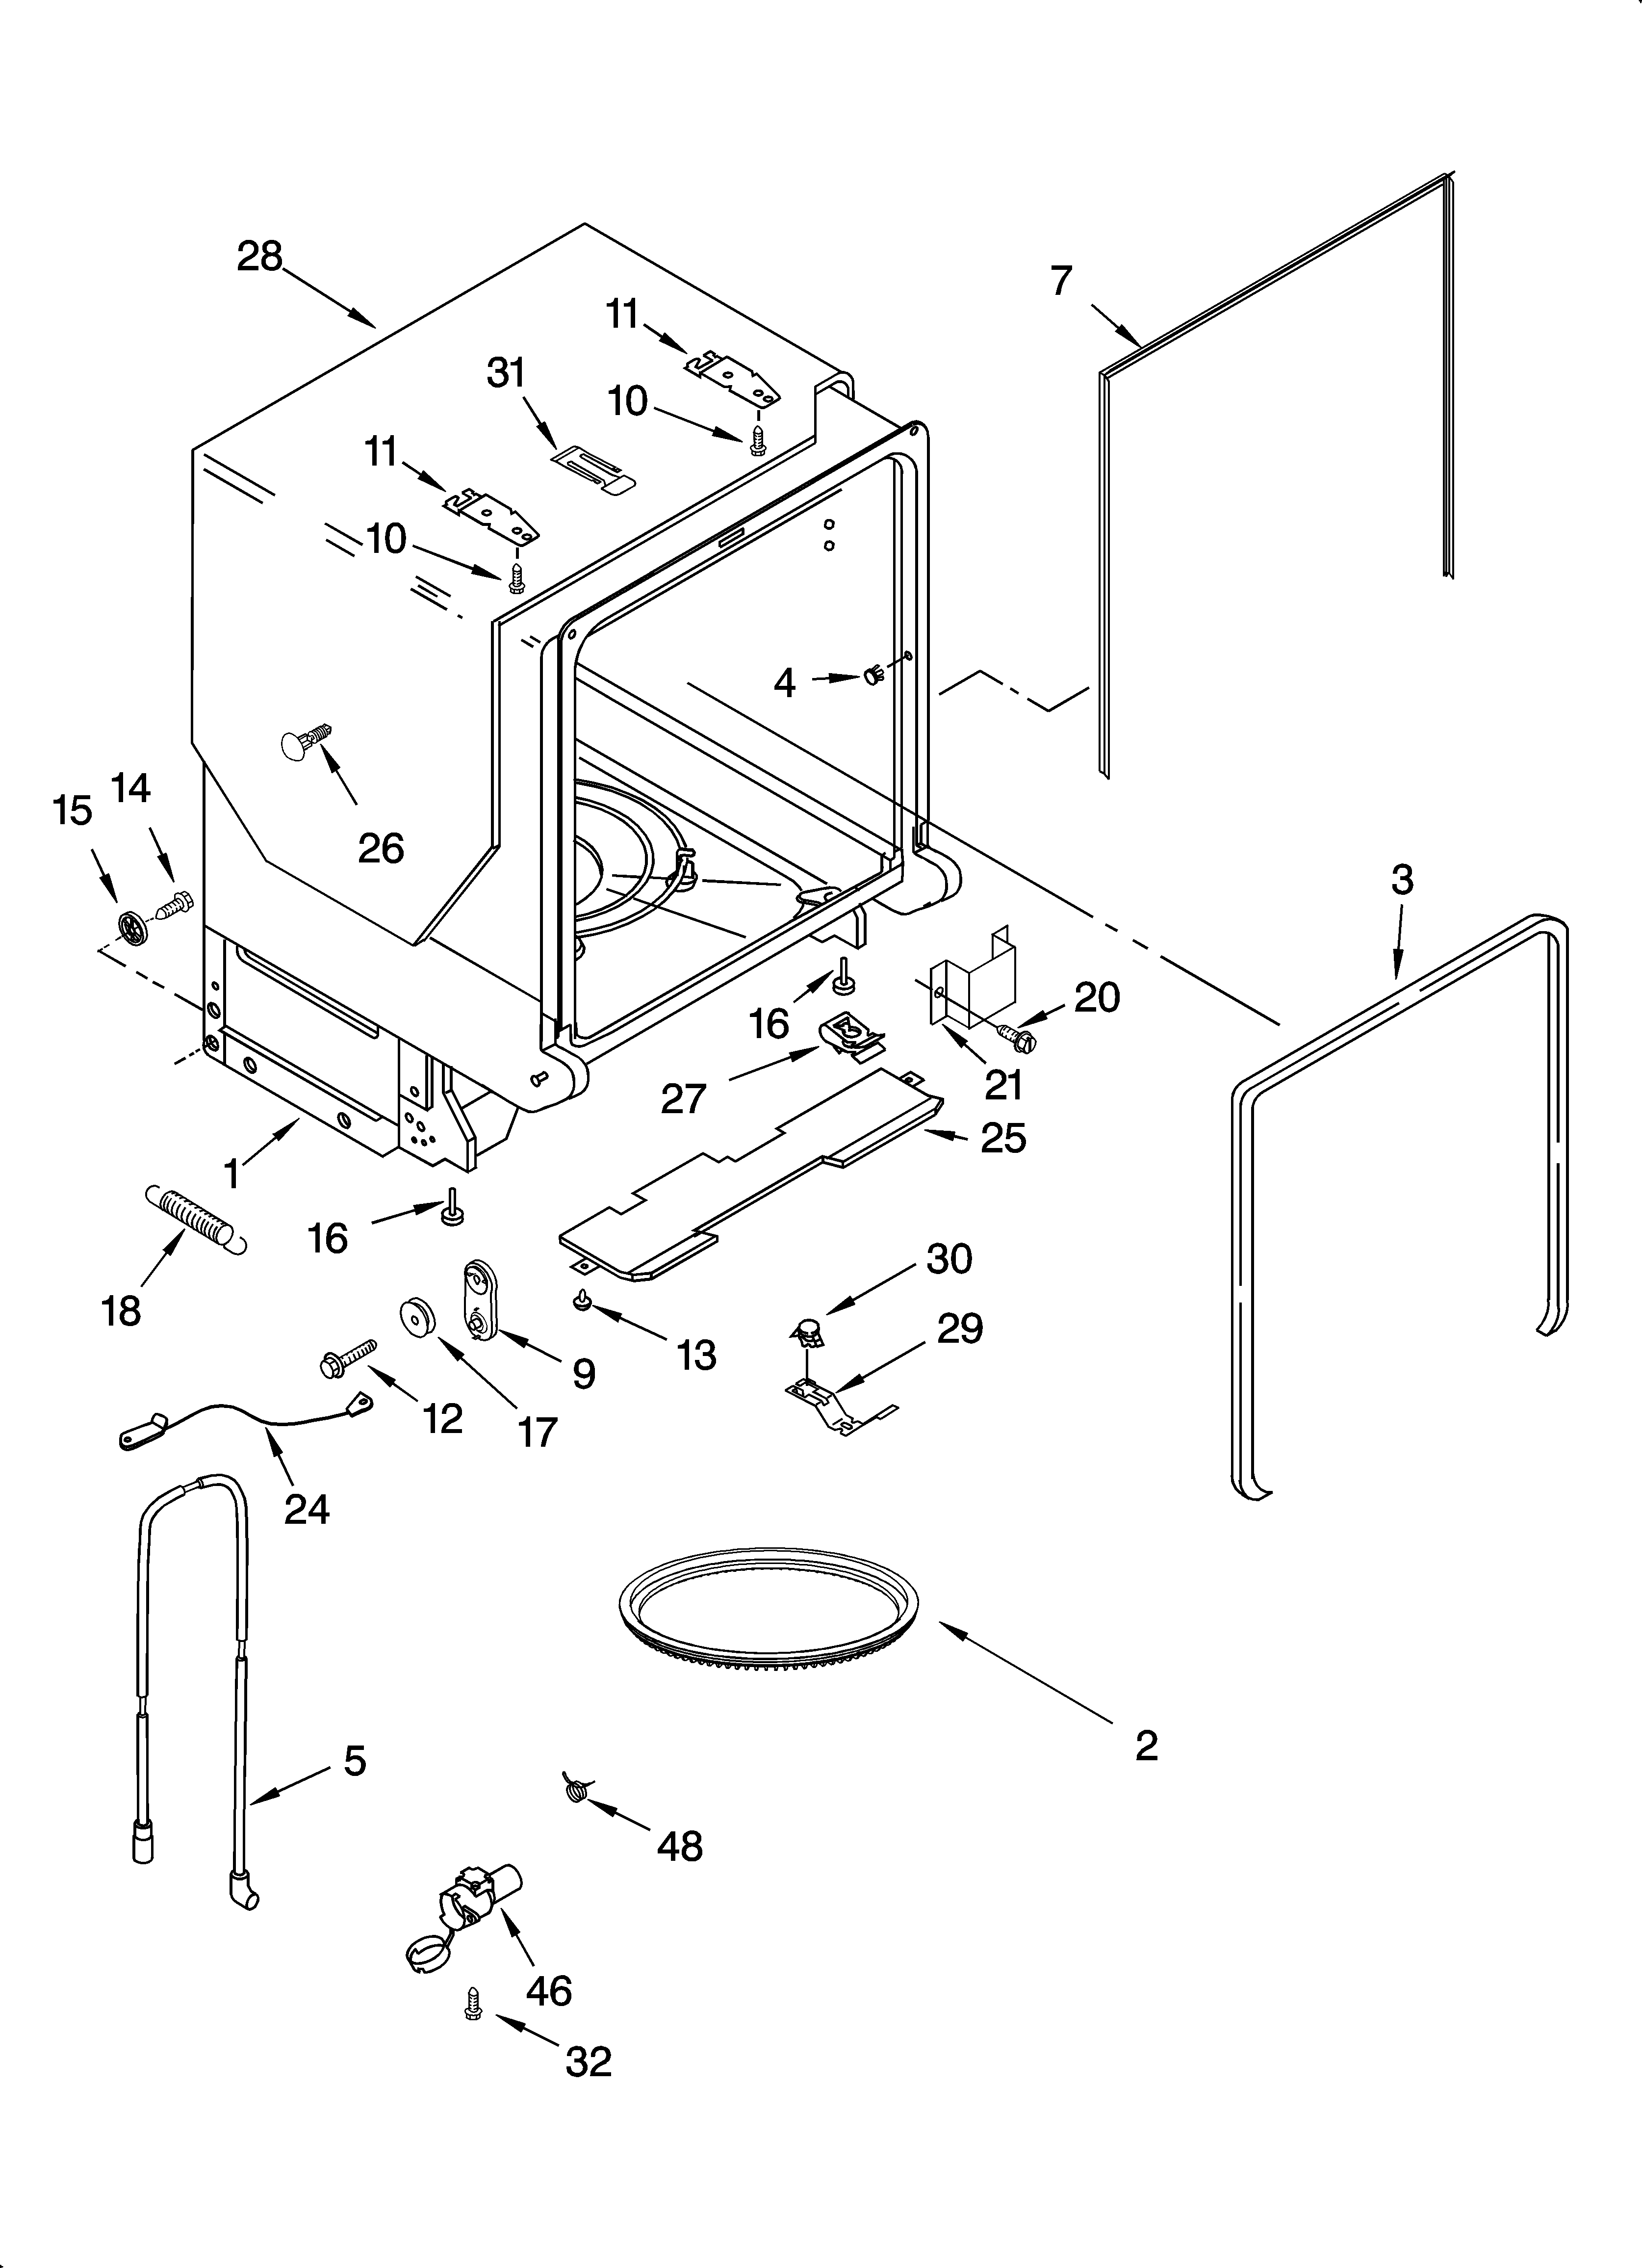 KitchenAid KUDS01DLWH2 tub and frame parts diagram